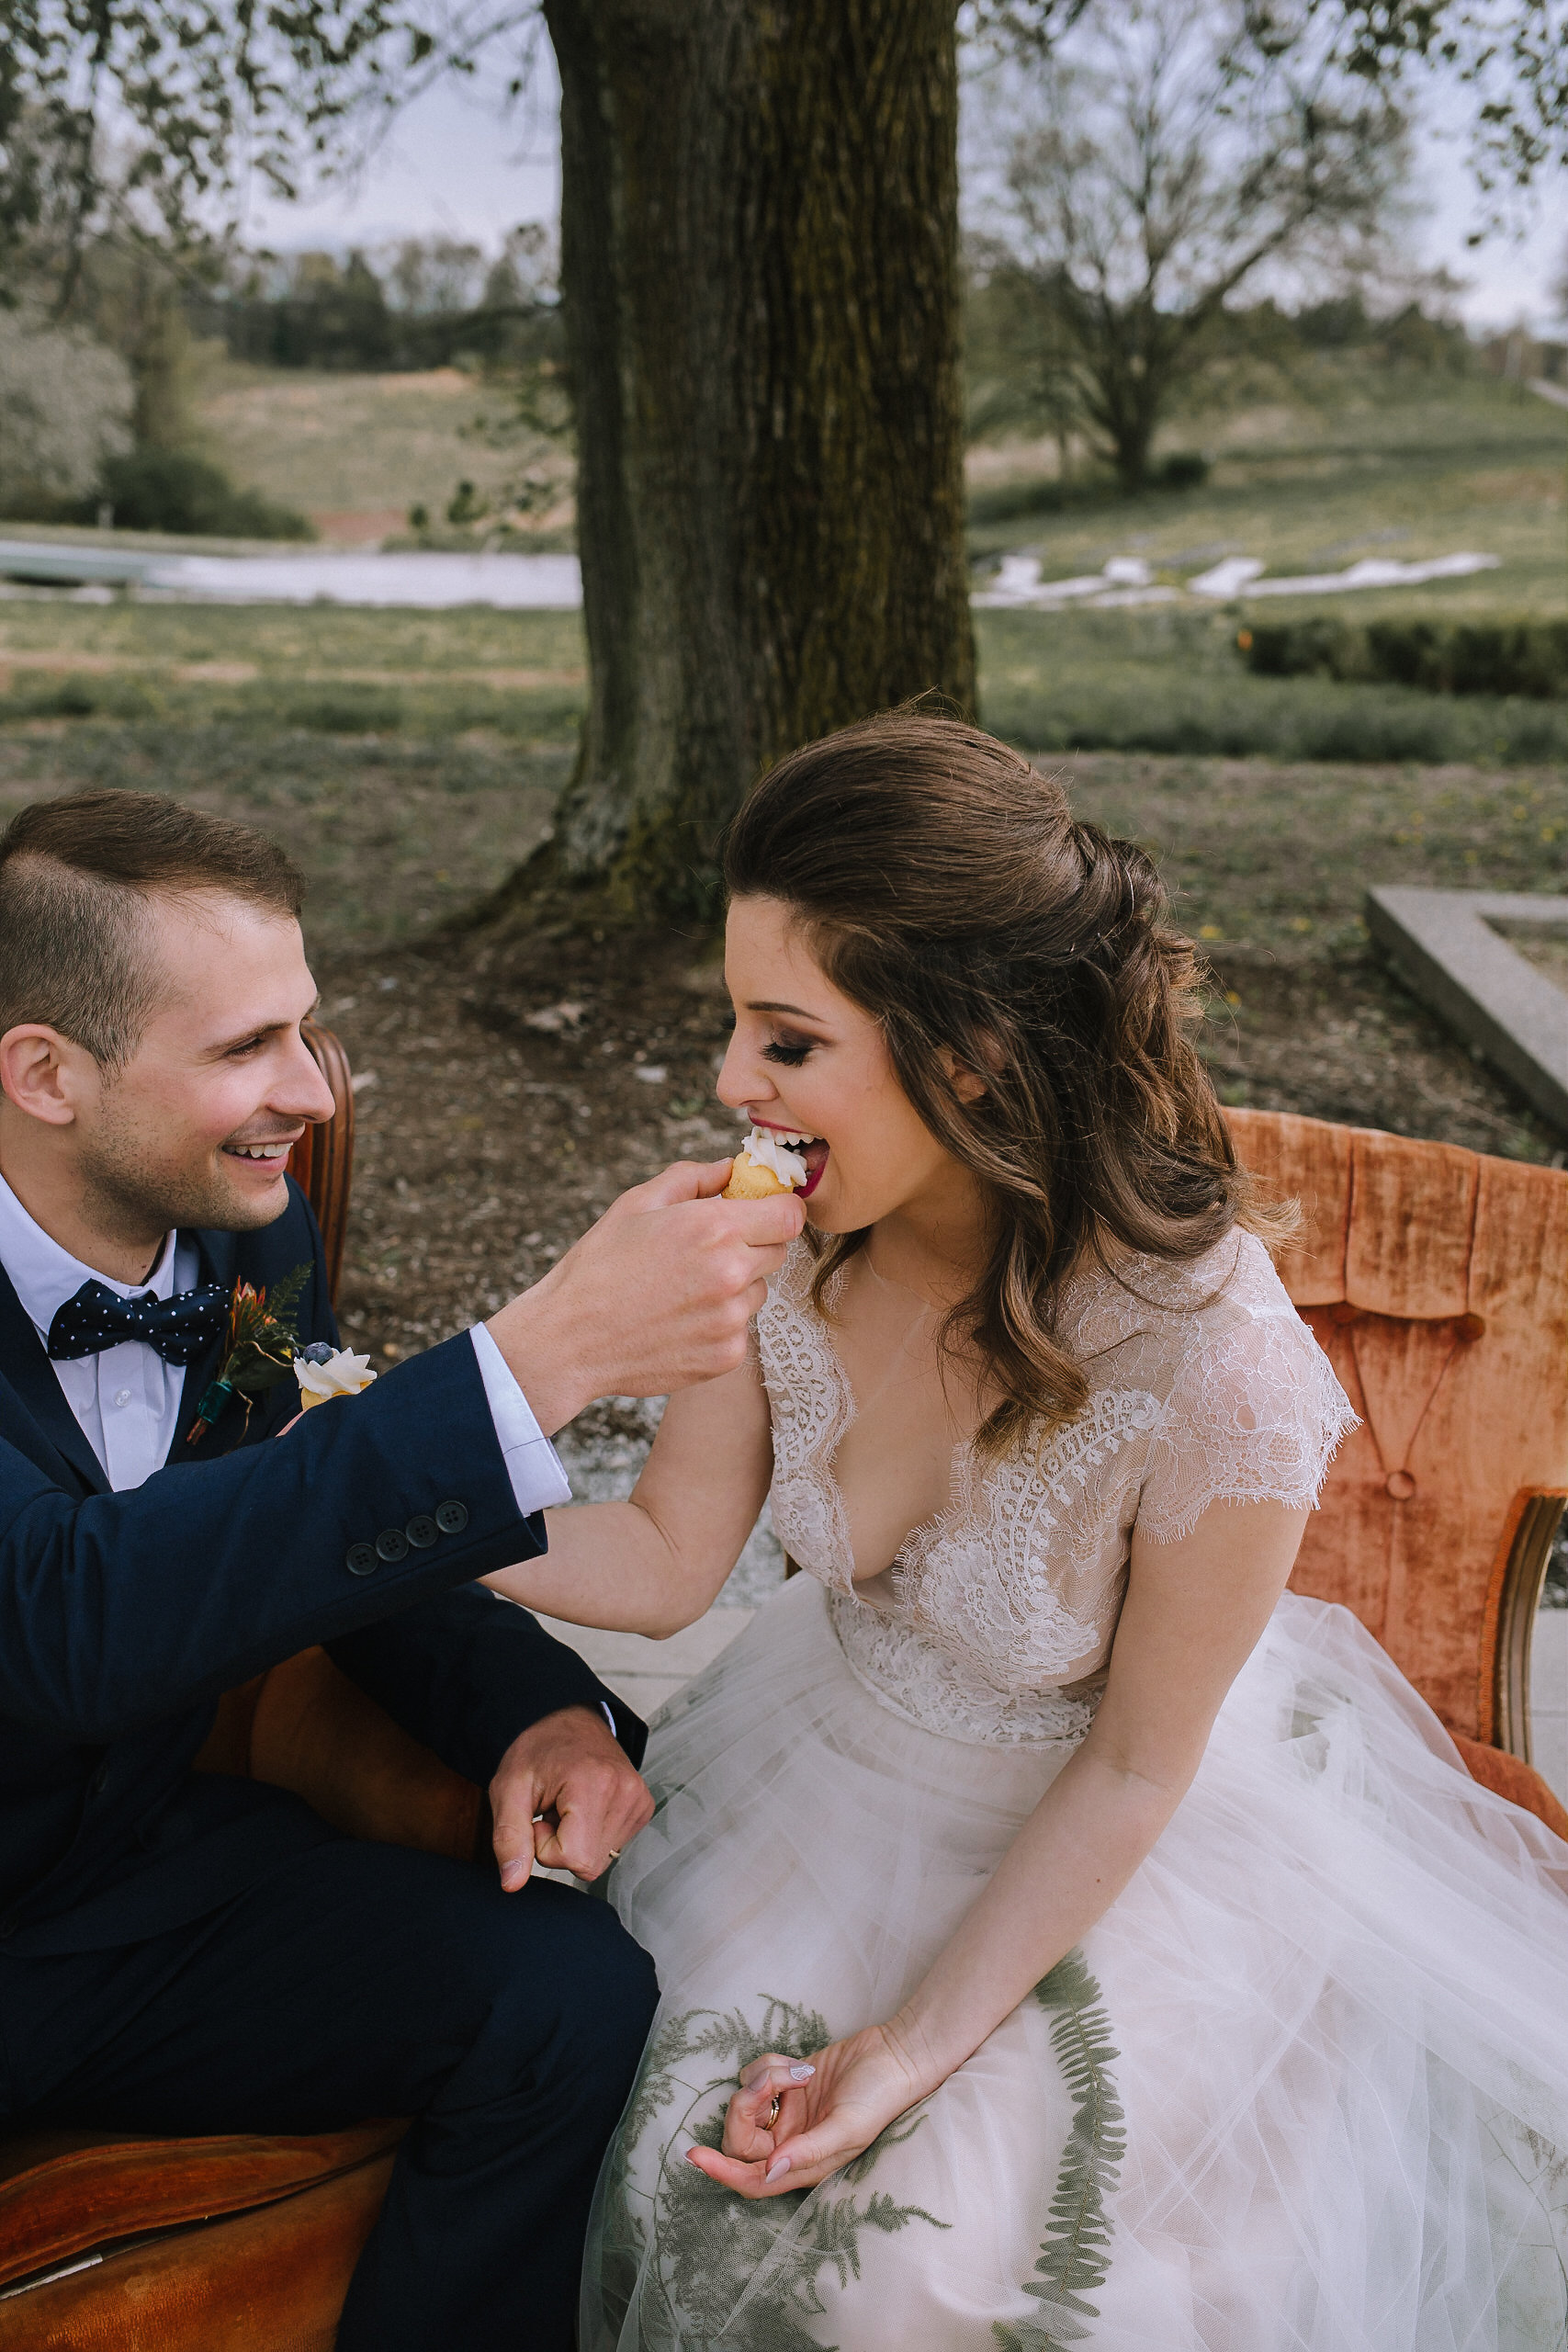 Outdoor bohemian lounge area from Vintage Alley Rentals at Chatham University, Eden Hall Farm designed by Exhale Events. Bride's look from Blanc de Blanc Bridal, Melissa Gown by Divine Atelier. Groom's suit from H&M.